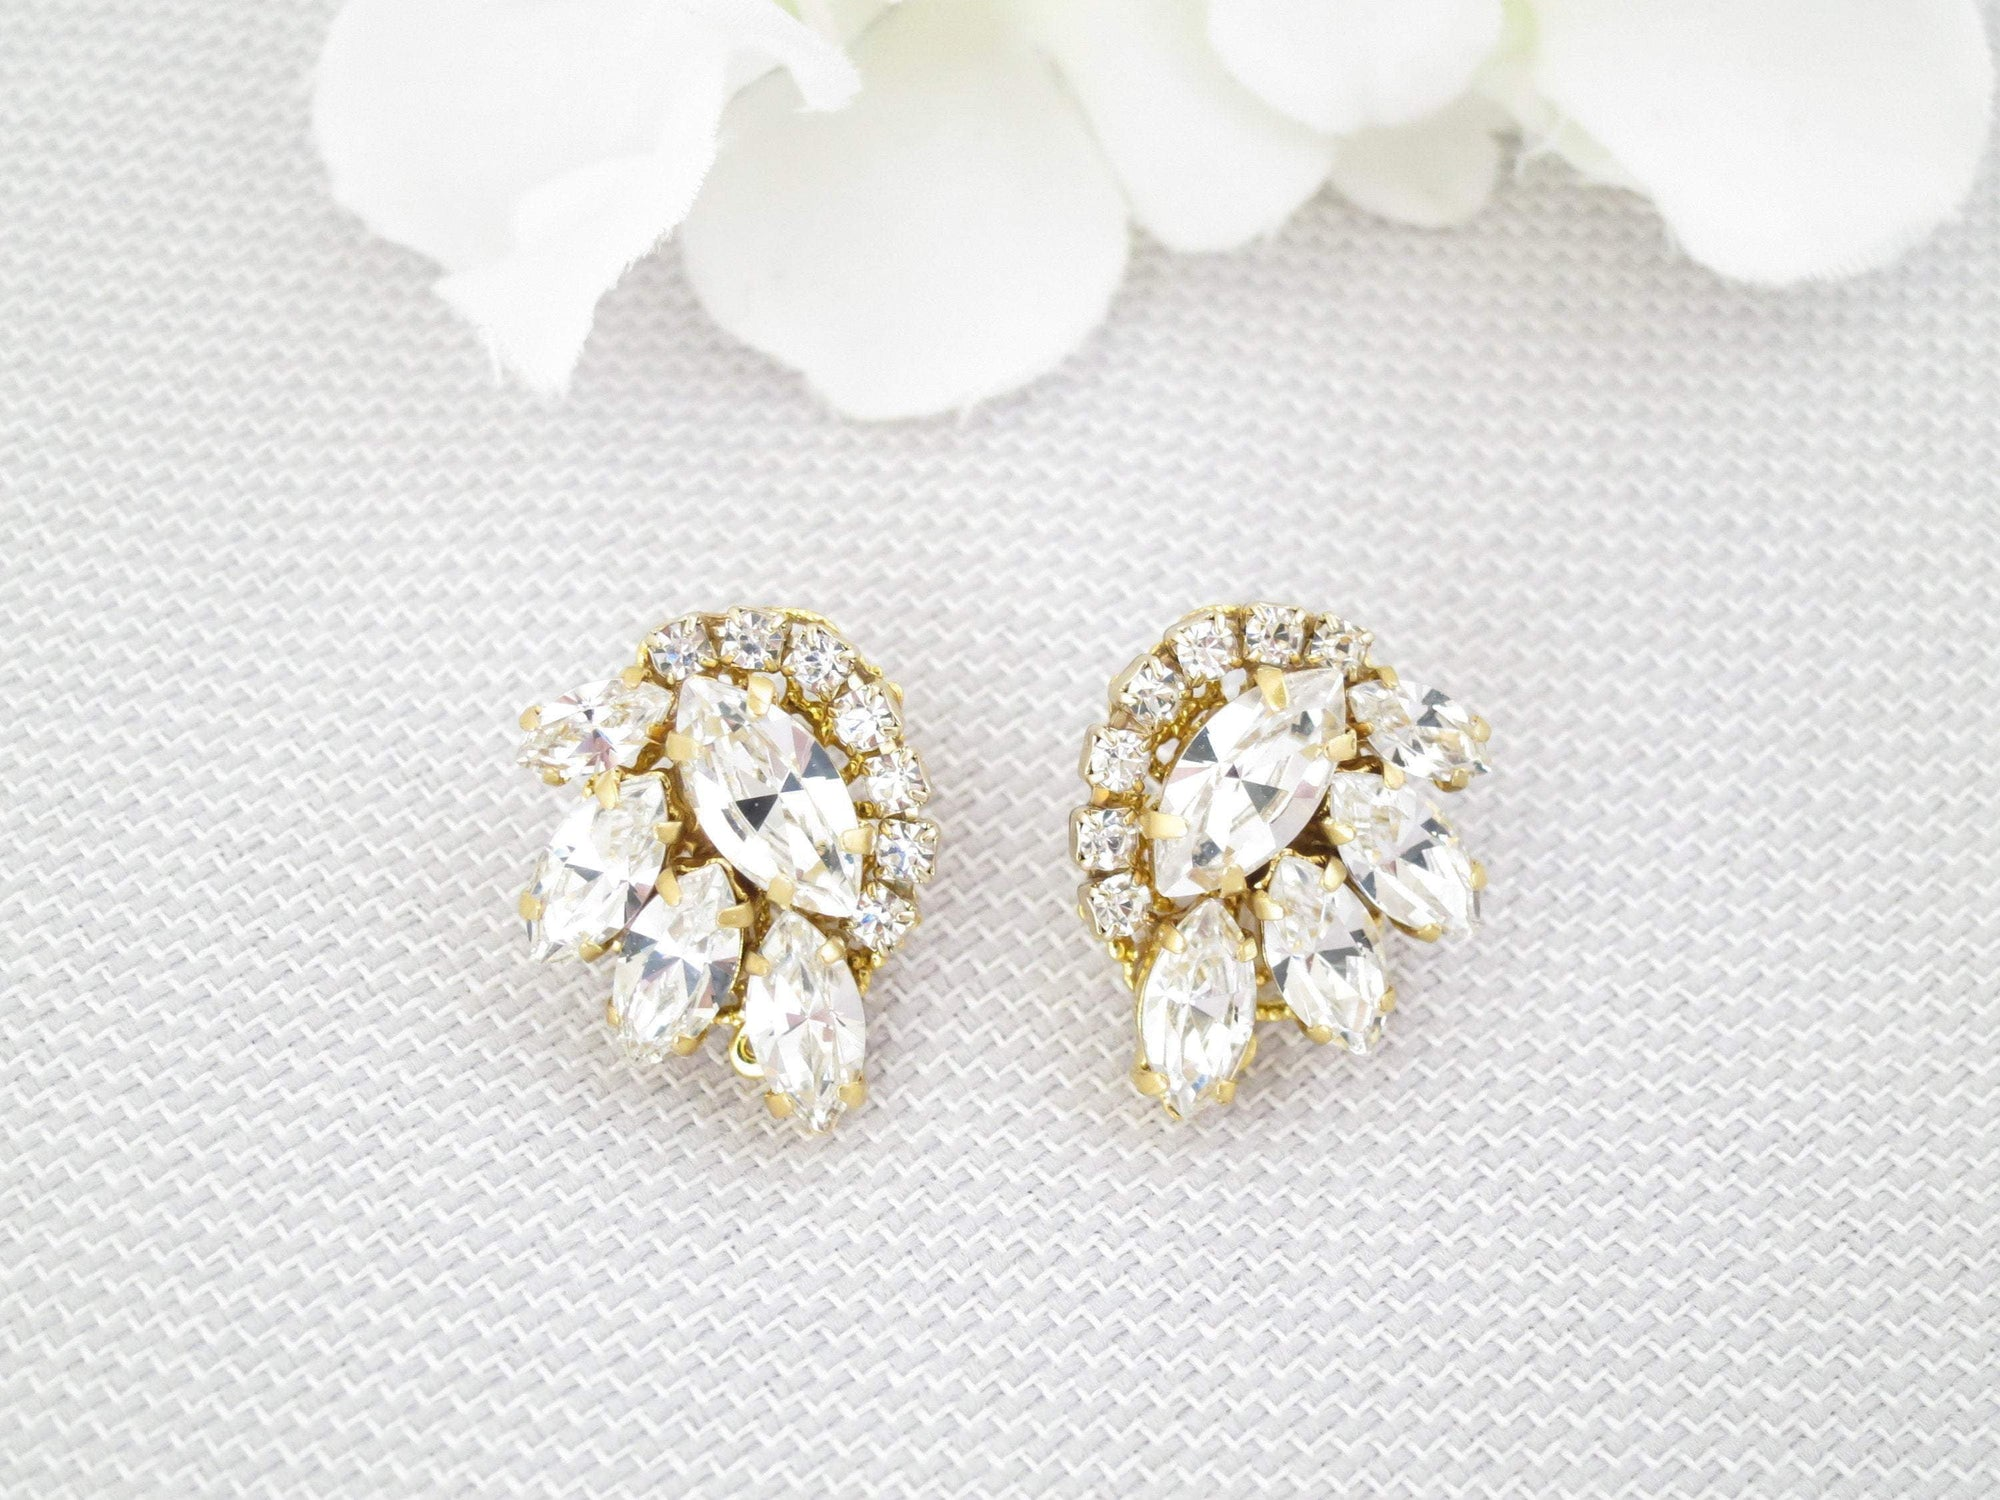 DARCY:  Petite Crystal Post Style Earrings - BlingBaddaBoom - Minimalist, Vintage, Modern Wedding and Bridal Jewelry